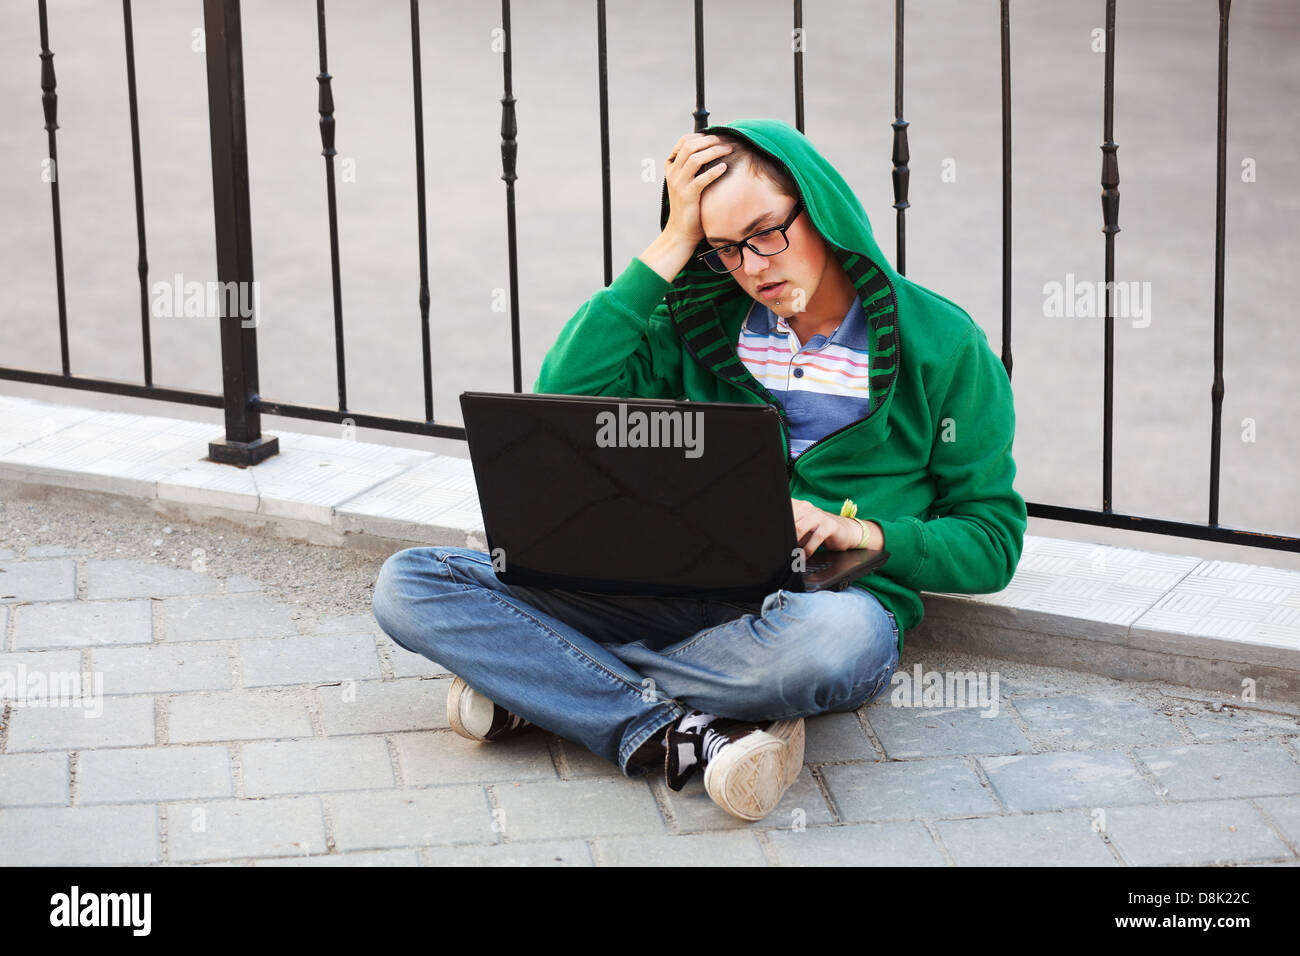 Young student using laptop - Stock Image